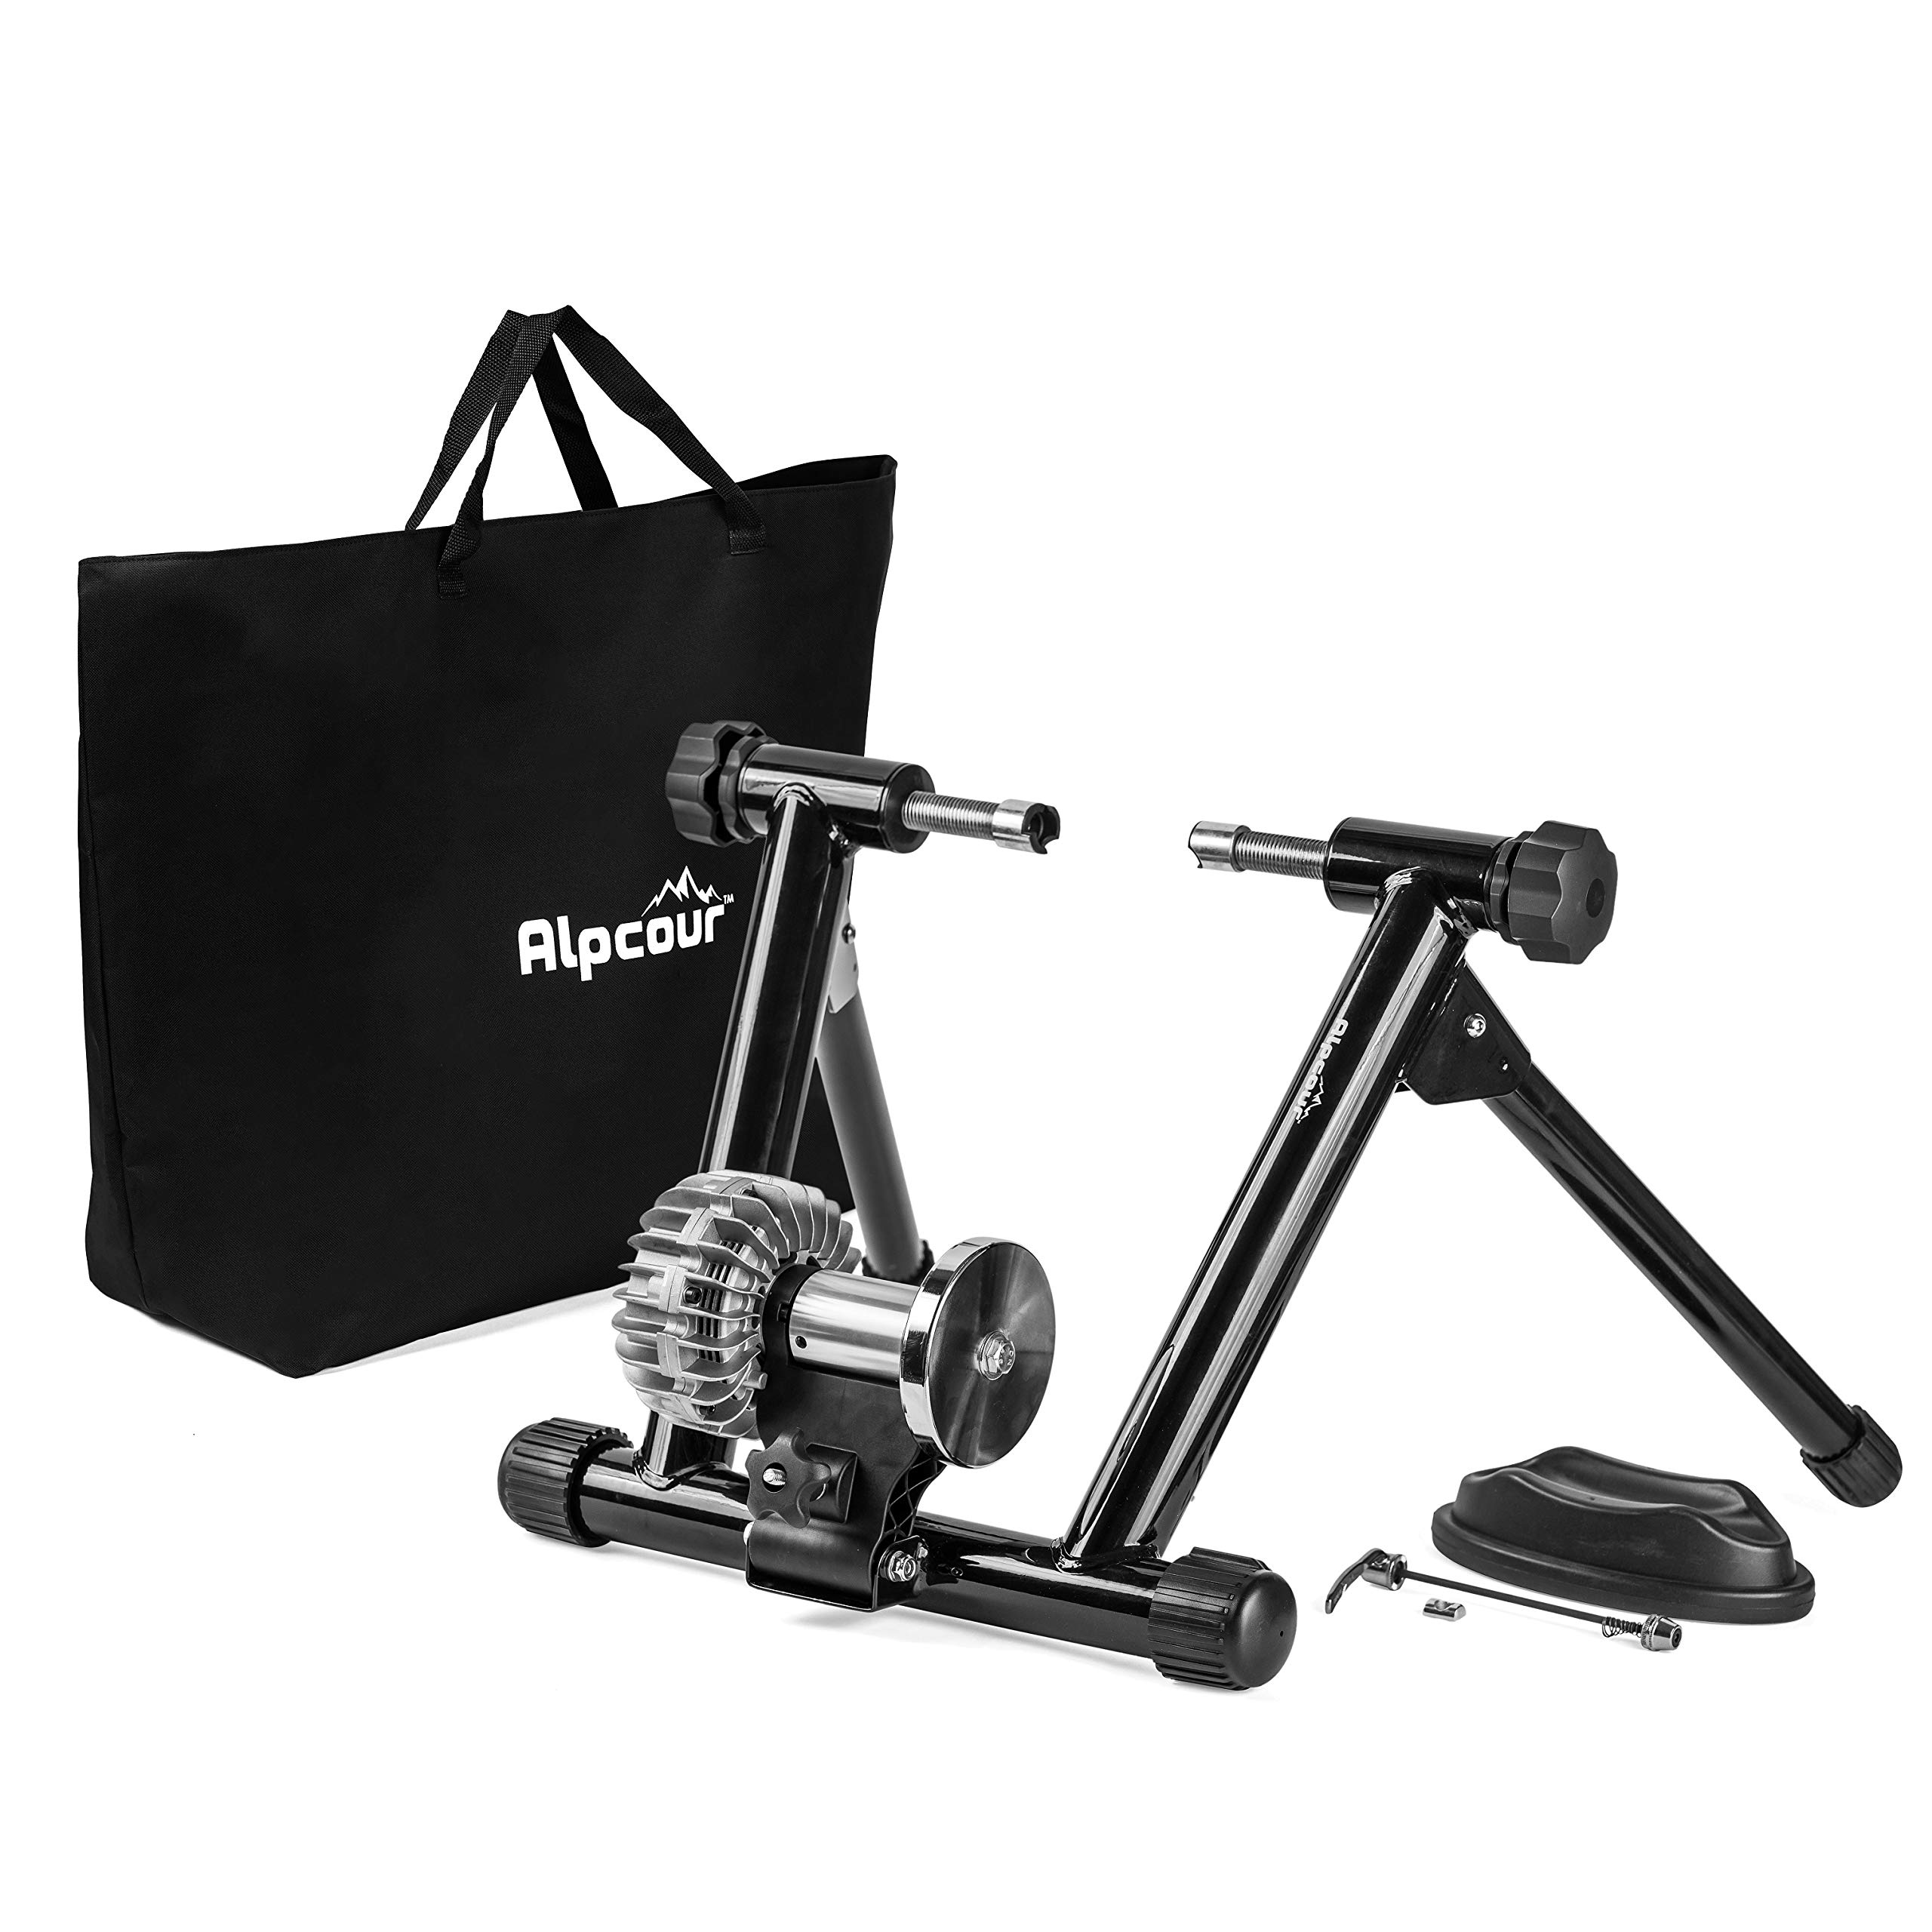 Alpcour Fluid Bike Trainer Stand - Portable Stainless Steel Indoor Trainer w/Fluid Flywheel, Noise Reduction, Progressive Resistance, Dual-Lock System - Stationary Exercise for Road & Mountain Bikes by Alpcour